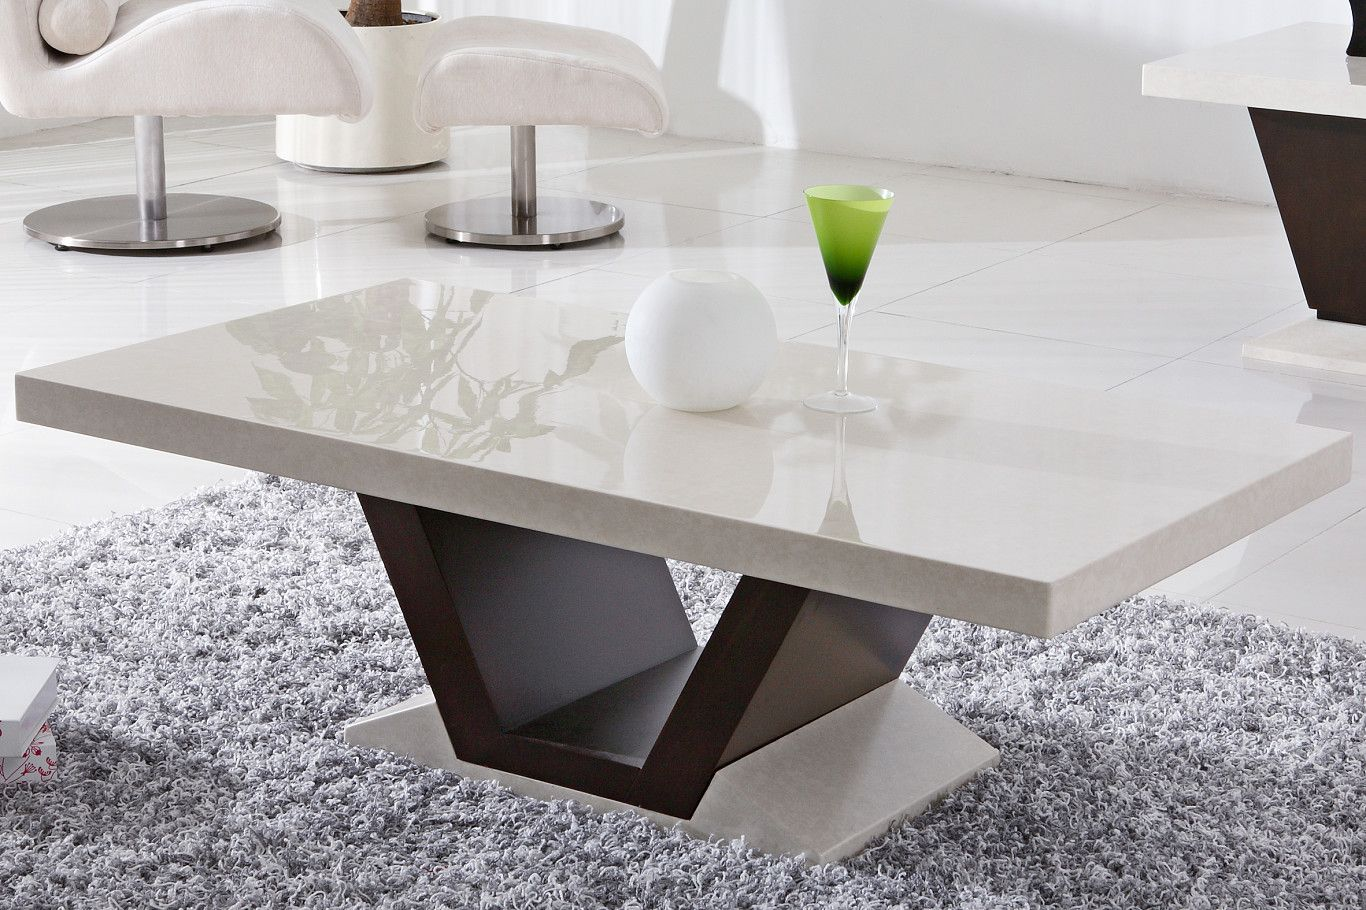 Marble Coffee Table Design Marble Coffee Table Marble Coffee Table Set Marble Coff Marble Coffee Table Living Room Marble Coffee Table Stone Coffee Table [ 910 x 1366 Pixel ]